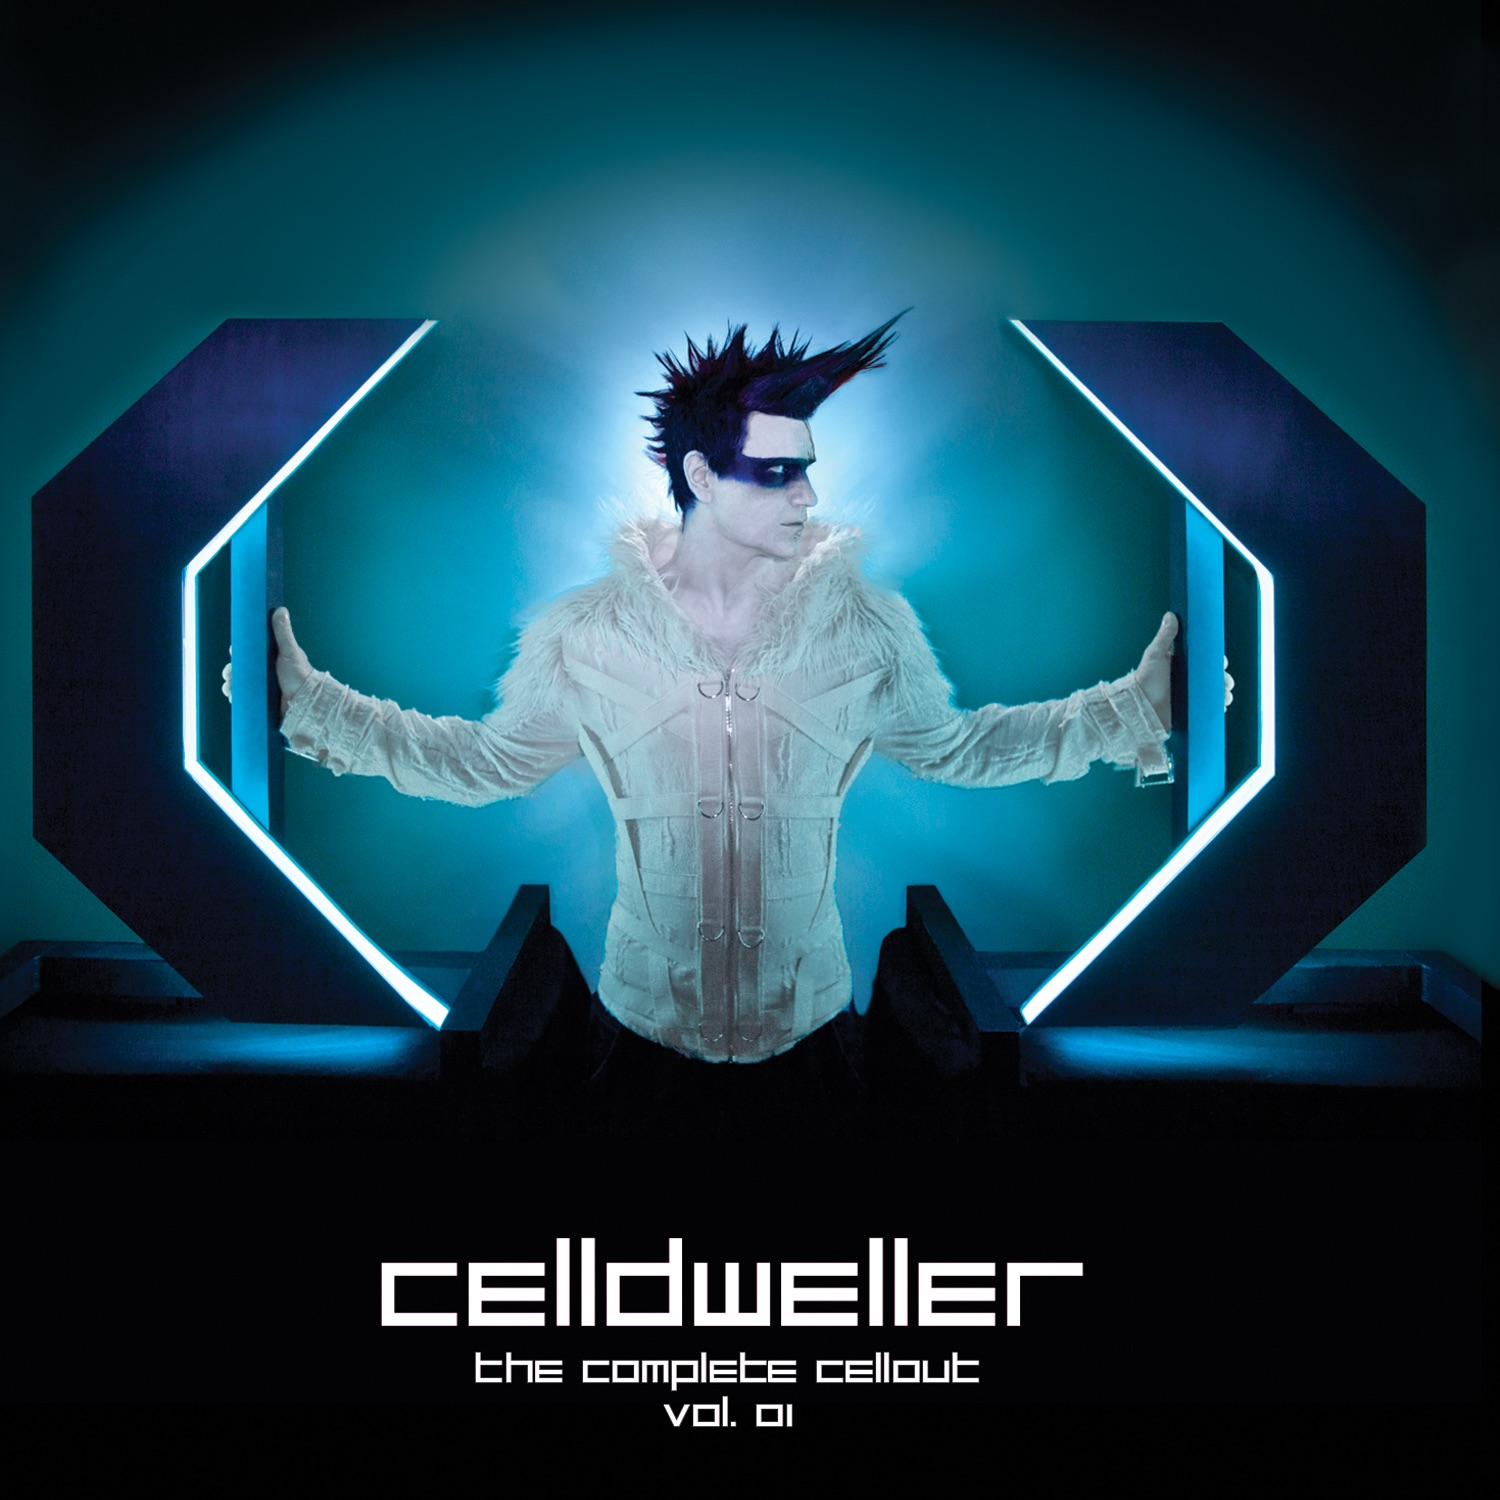 Birthright (Blue Stahli Remix) by Celldweller